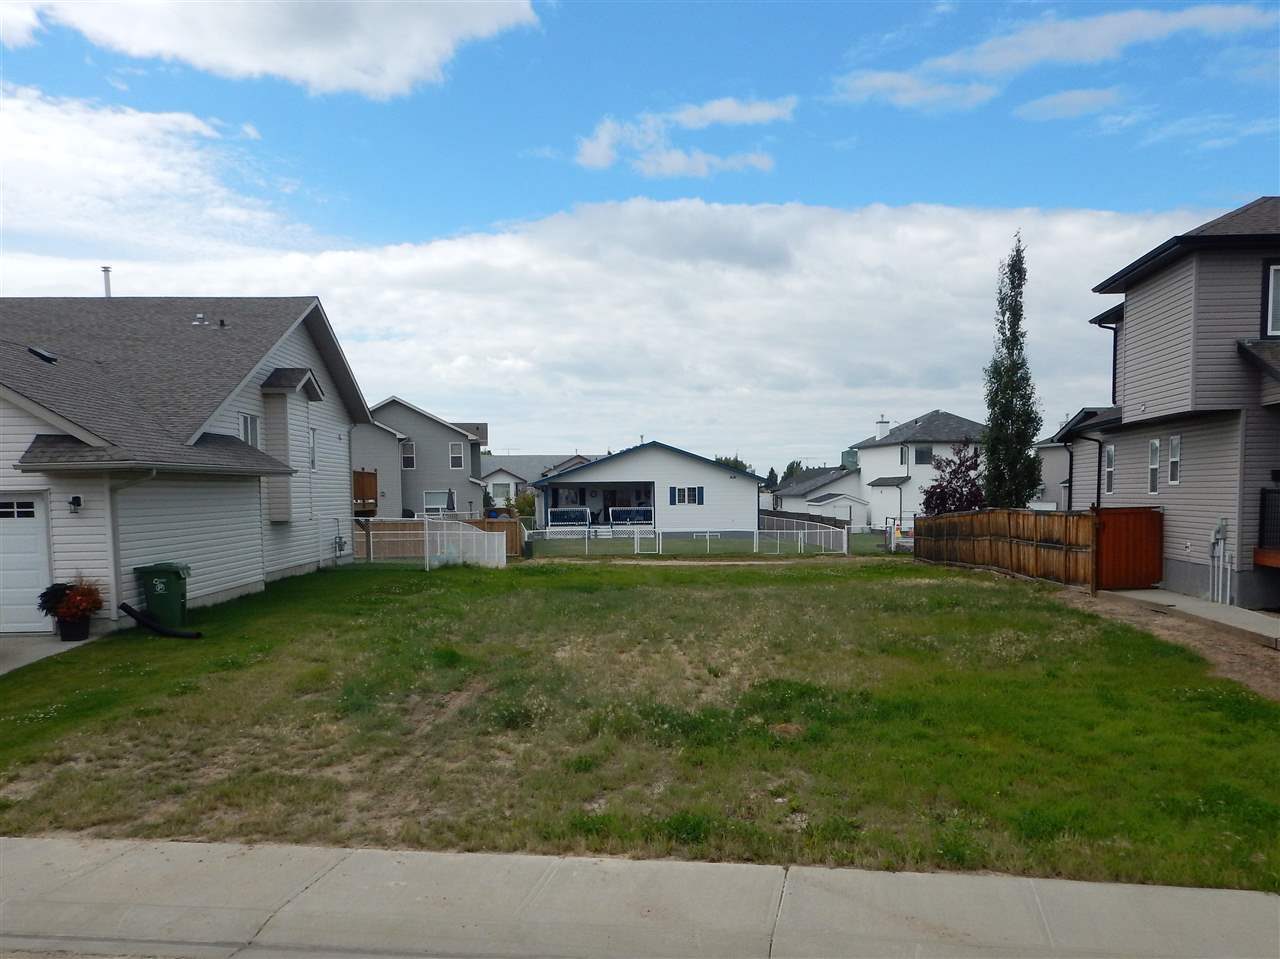 Build your dream home on the best remaining vacant lot in Aspendale. Prime private location in a cul-de-sac and has a no exit back alley. Seller has house plans (1562sqft) suitable for the lot to help get you started.